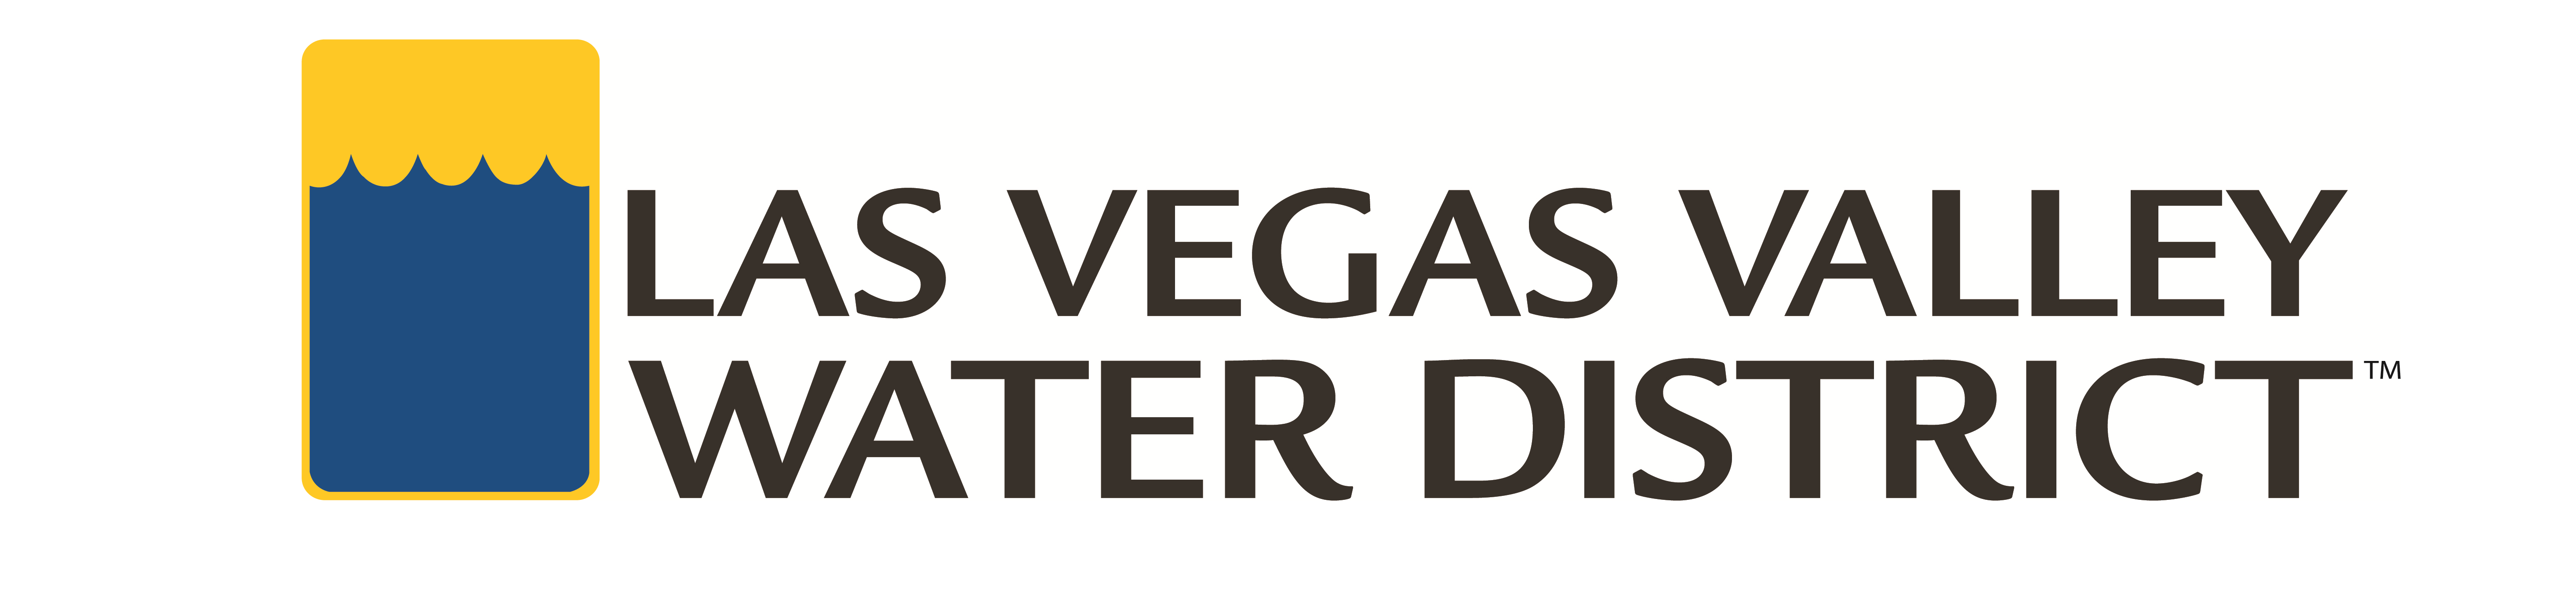 Las Vegas Valley Water District Investor Relations logo